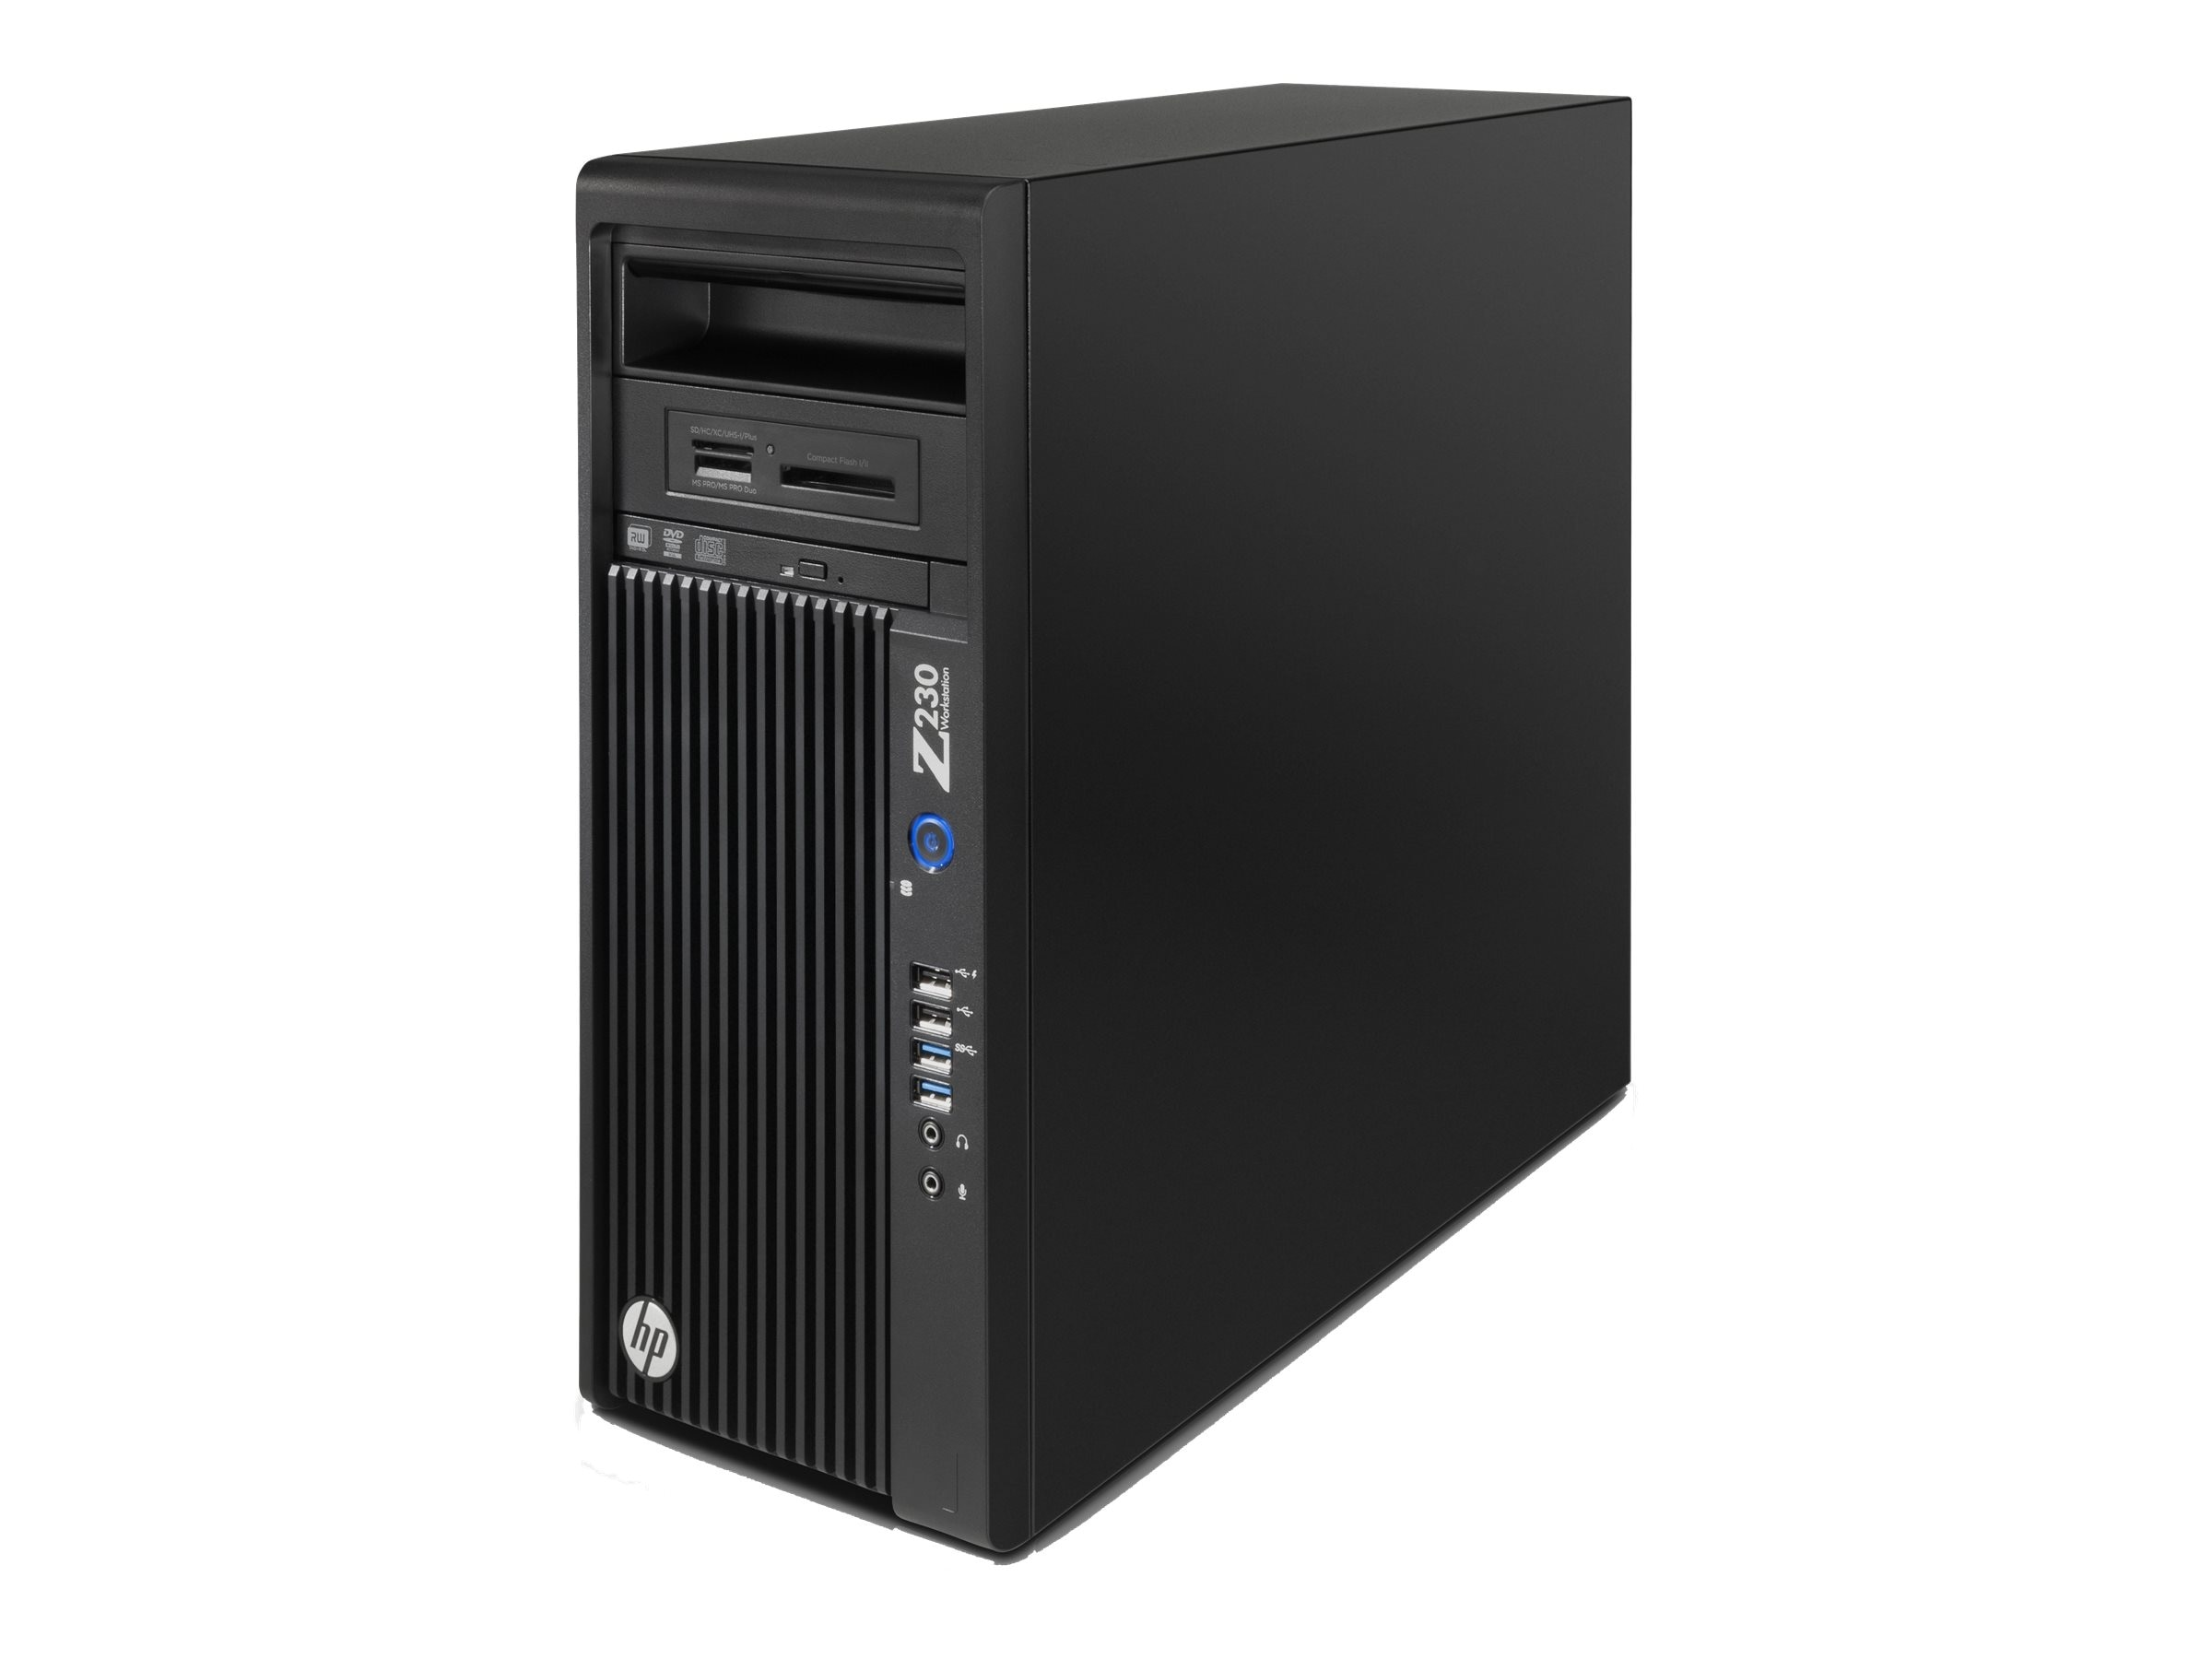 HP Z230 3.6GHz Core i7 Microsoft Windows 7 Professional 64-bit Edition   Windows 10 Pro, L9J81UT#ABA, 30739762, Workstations